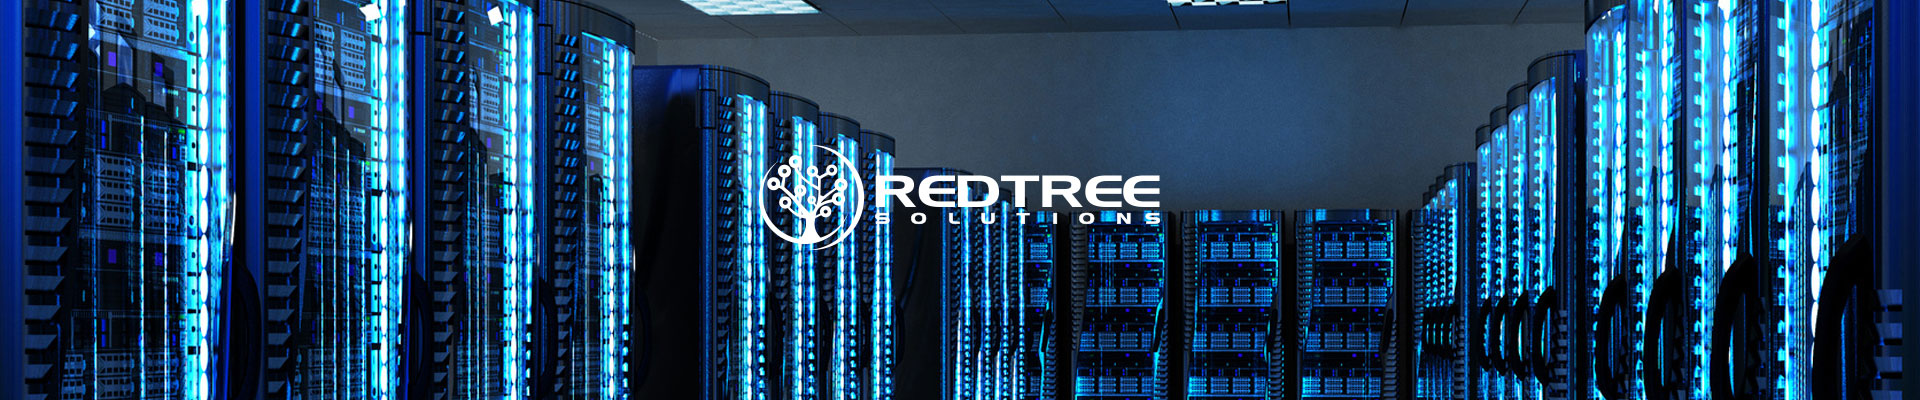 s-redtree-computing